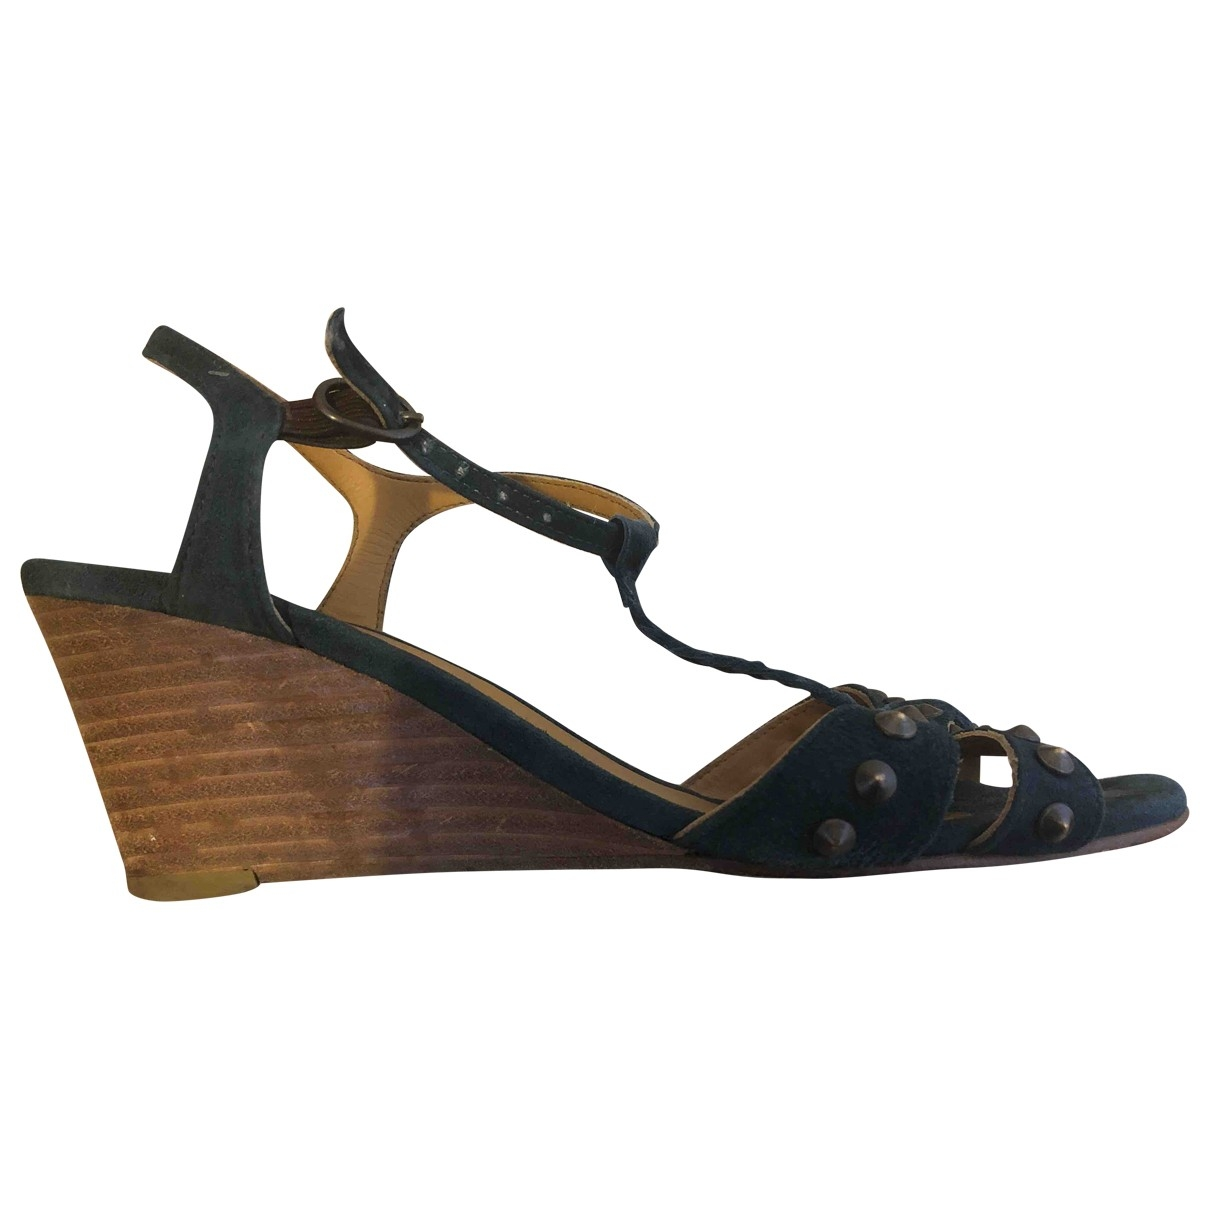 Zadig & Voltaire \N Green Leather Sandals for Women 38 EU